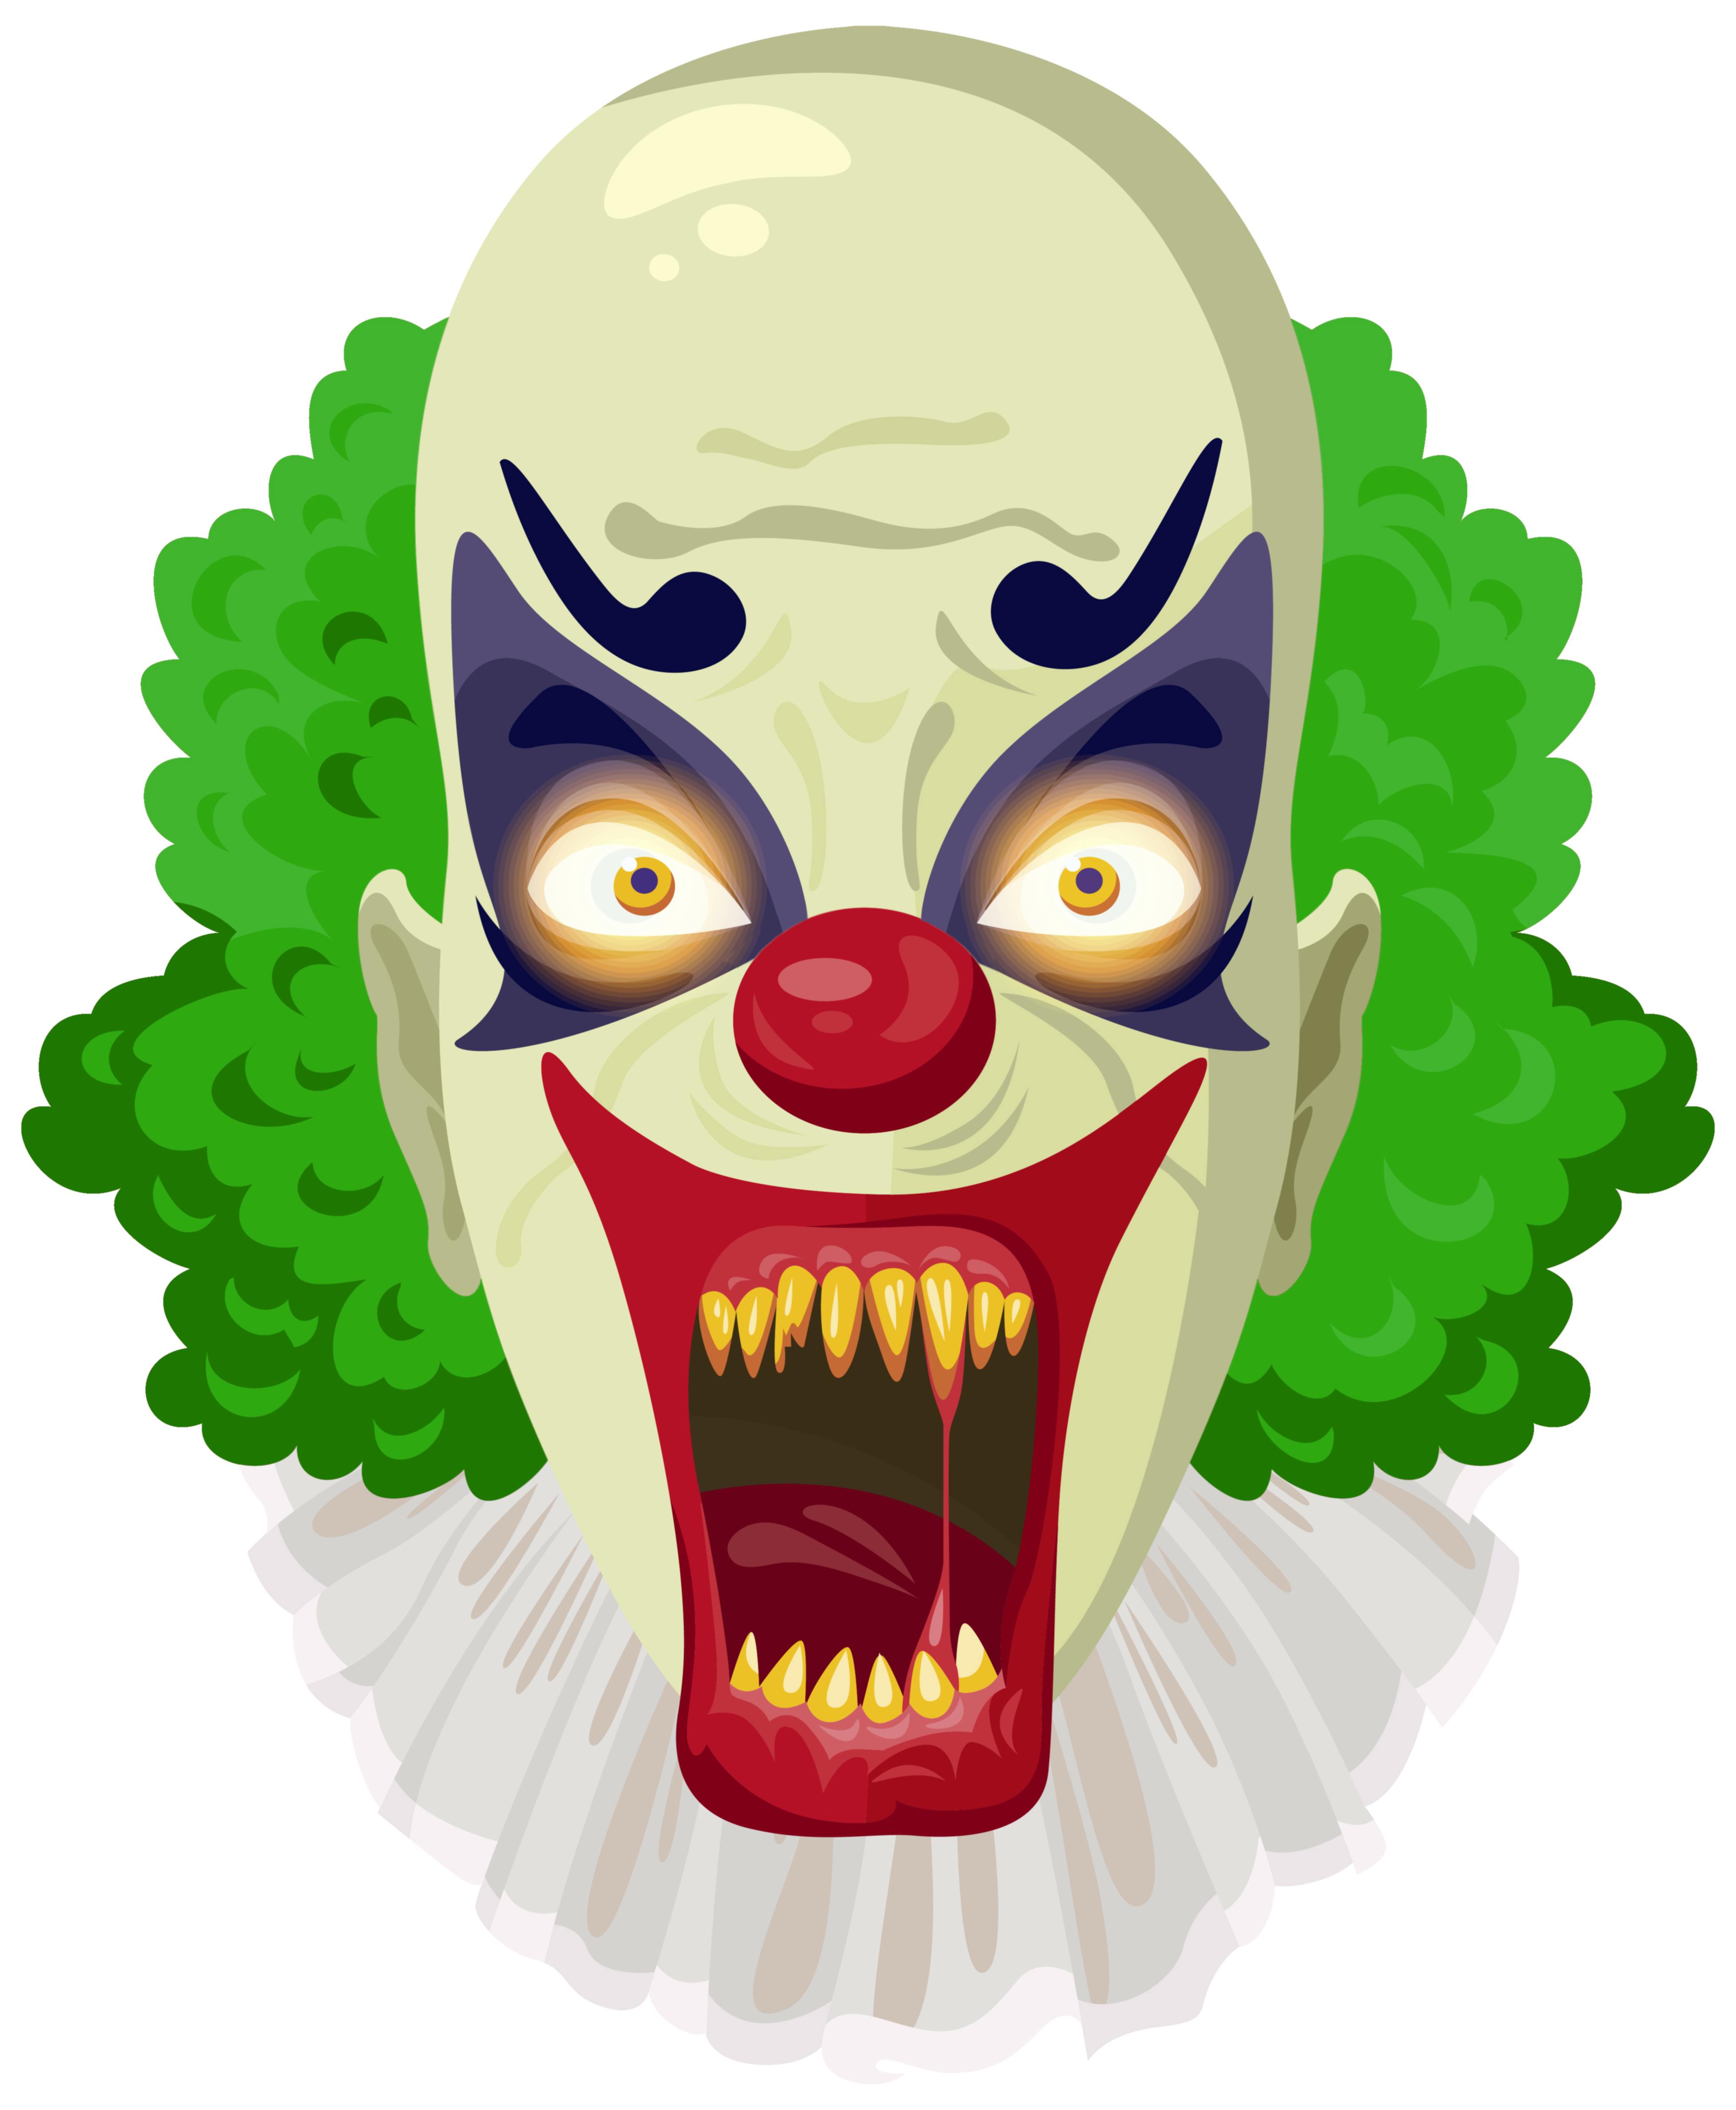 Clown head png. Scary green clipart image